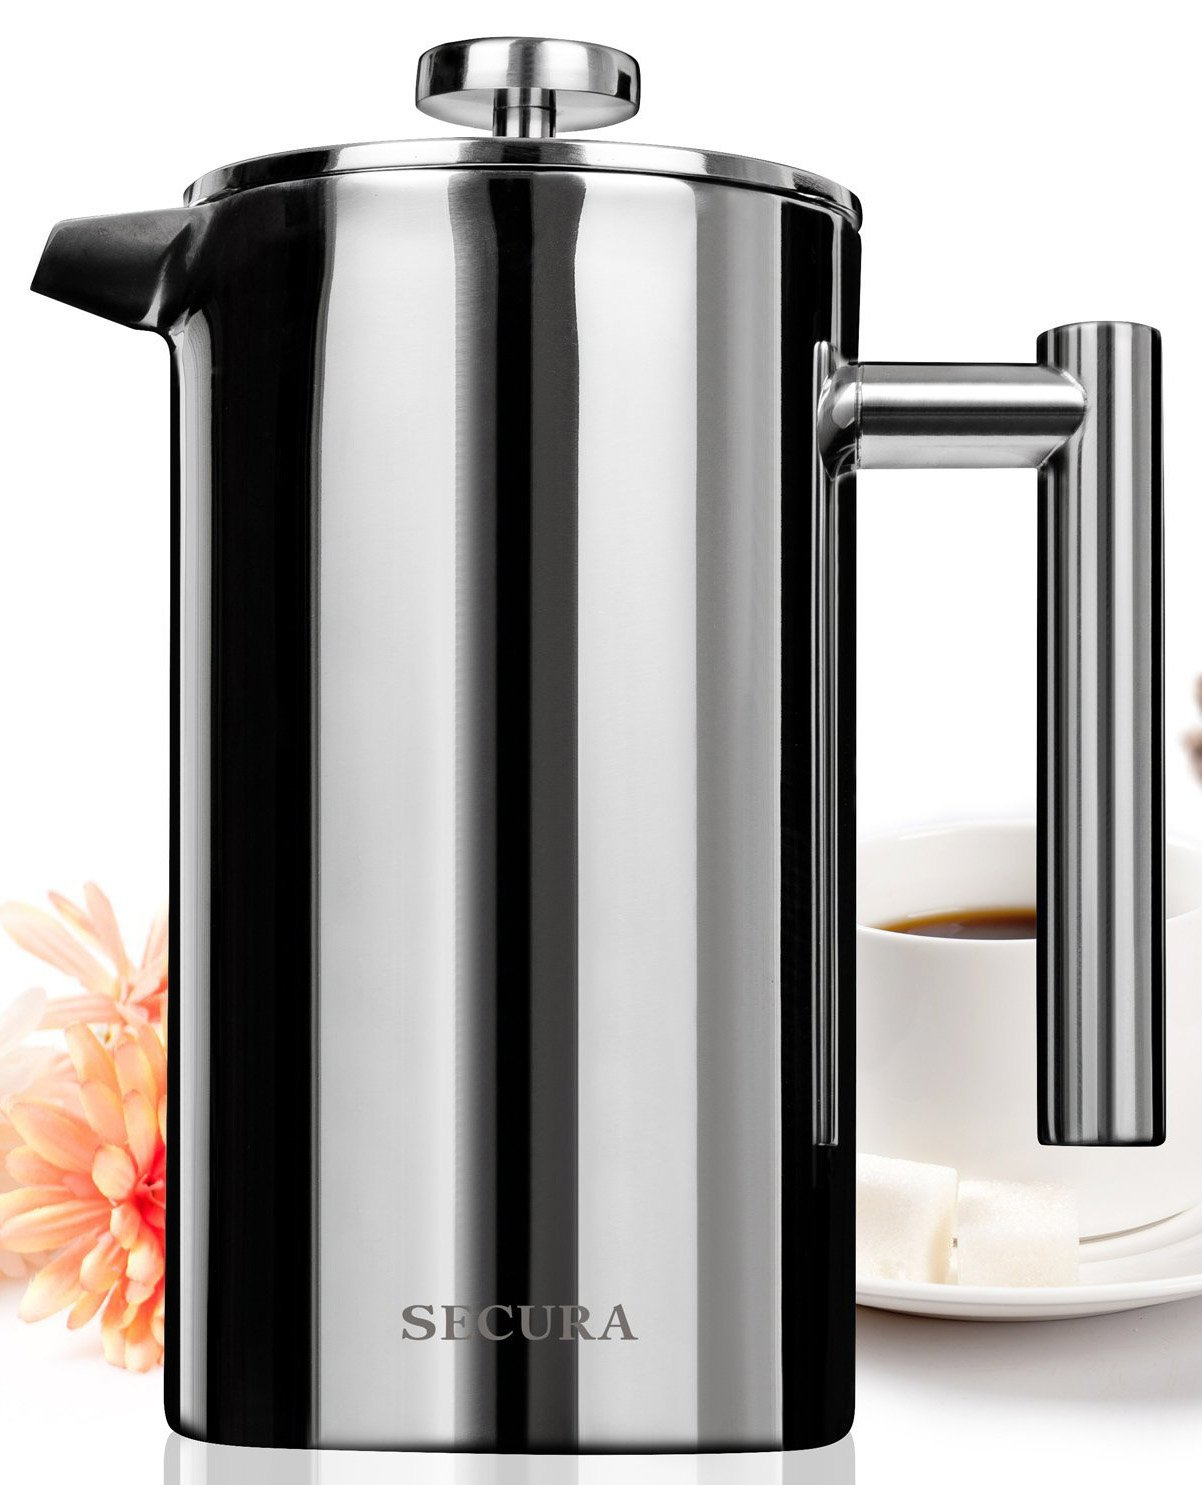 Secura Stainless Steel French Press Coffee Maker 18/10 Bonus Stainless Steel Screen (1500ML)